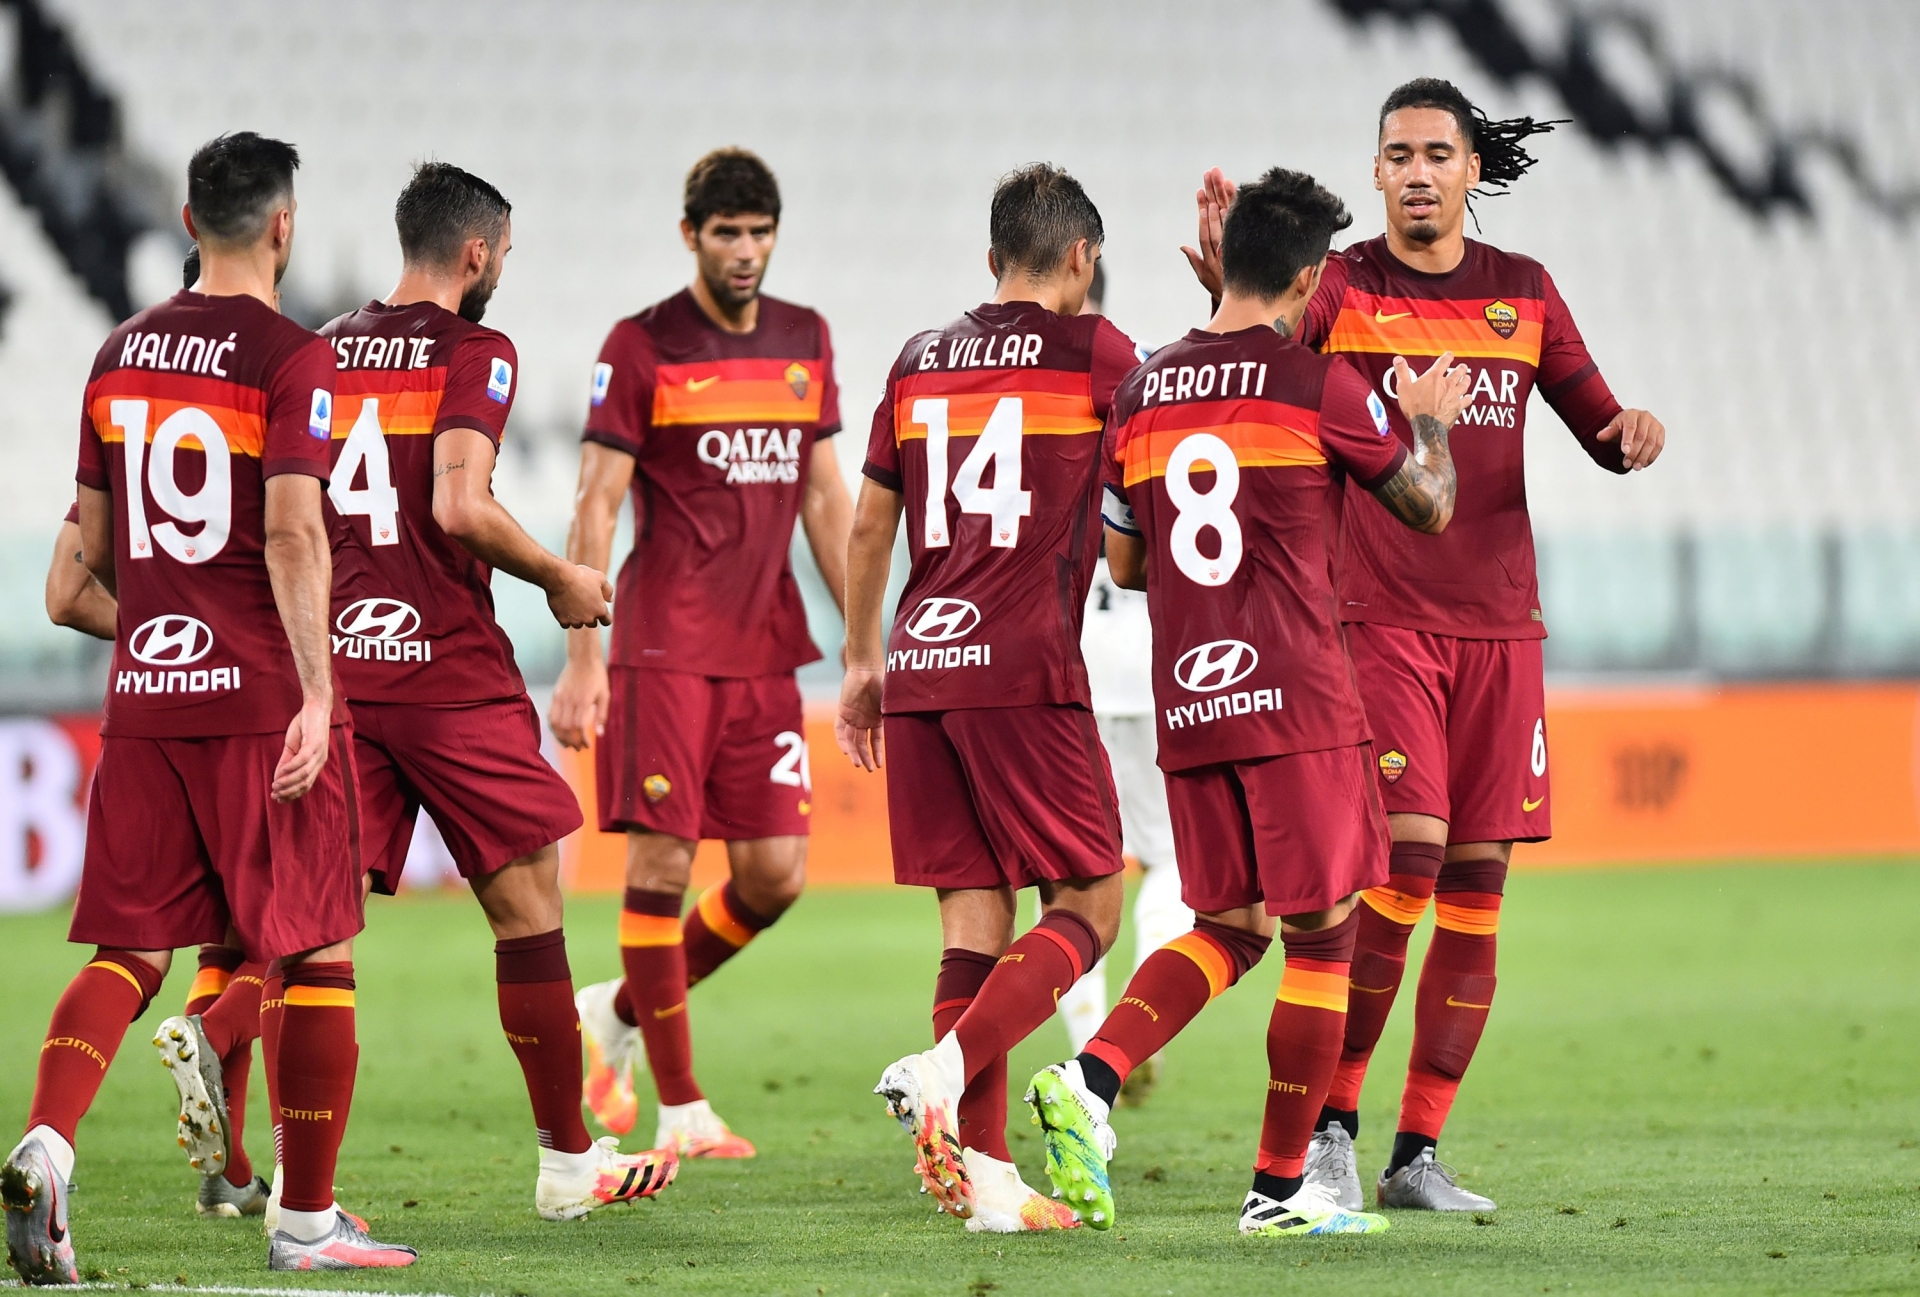 2021 AS Roma Series A Fixtures: Full Match Schedule, Future Opponents, TV Live Stream